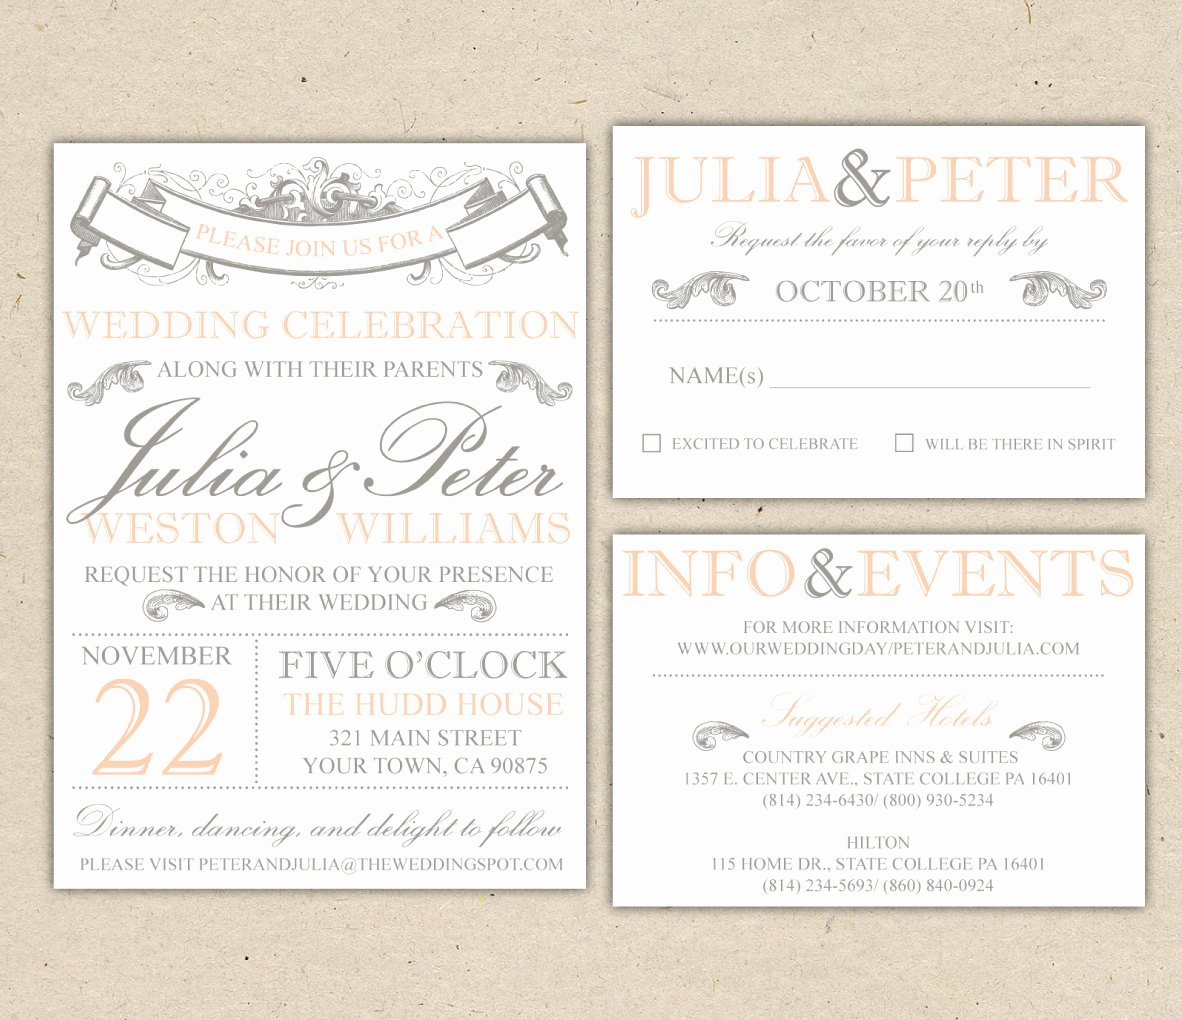 Wedding Invitation Template for Word New Free Wedding Invitation Templates for Word